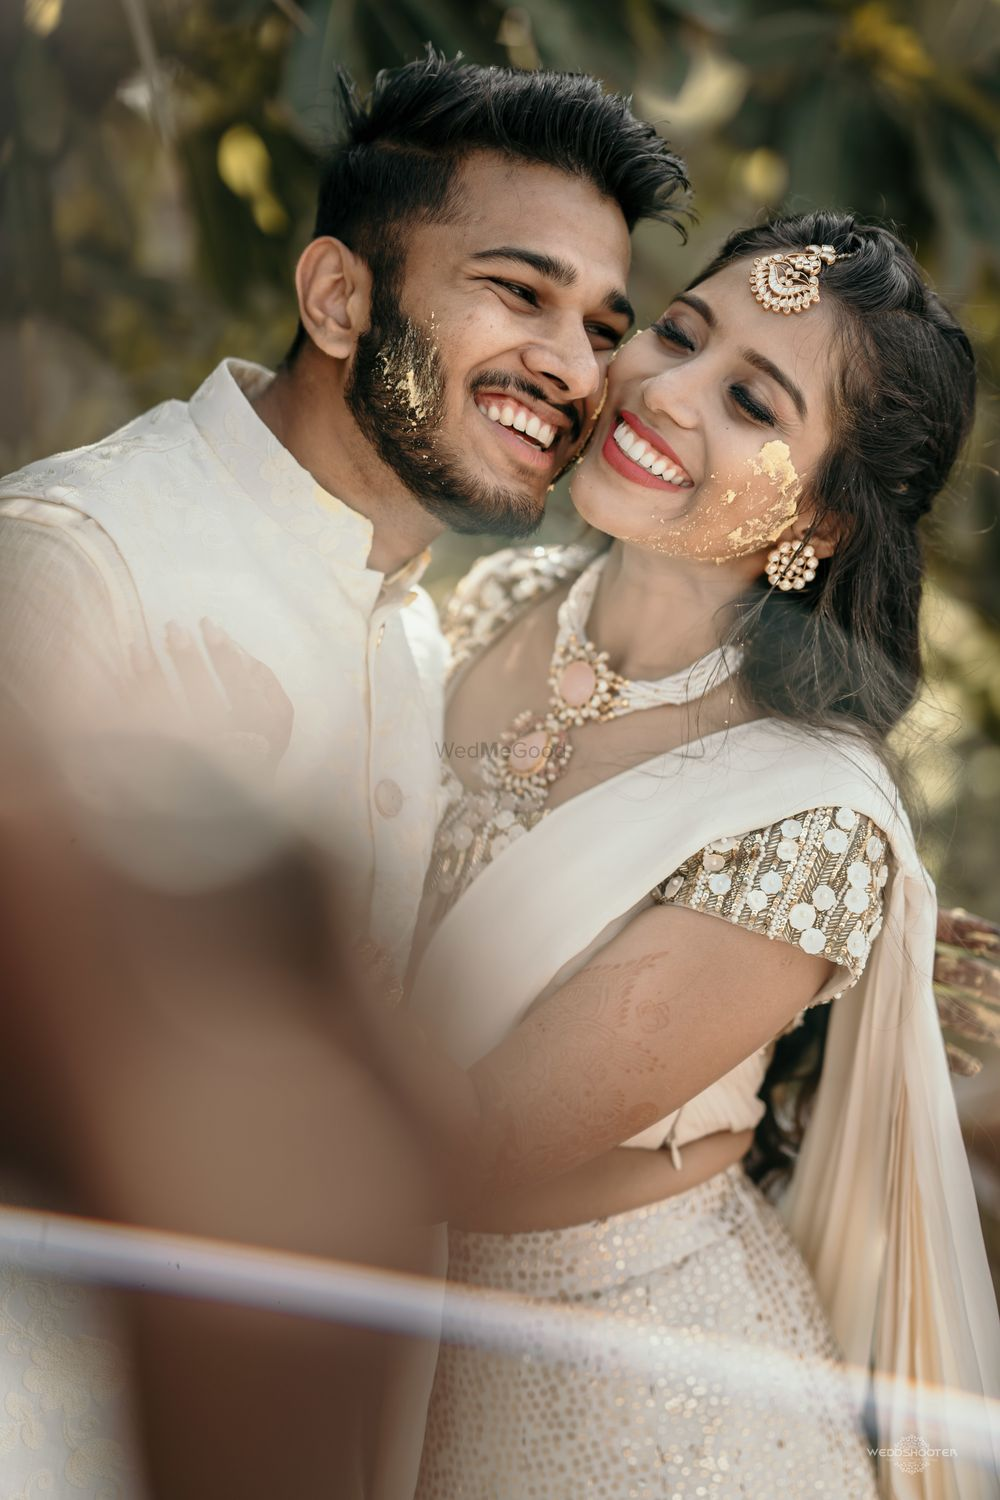 Photo From Komal & Pranit - Haldi & Sangeet - By The Weddingwale